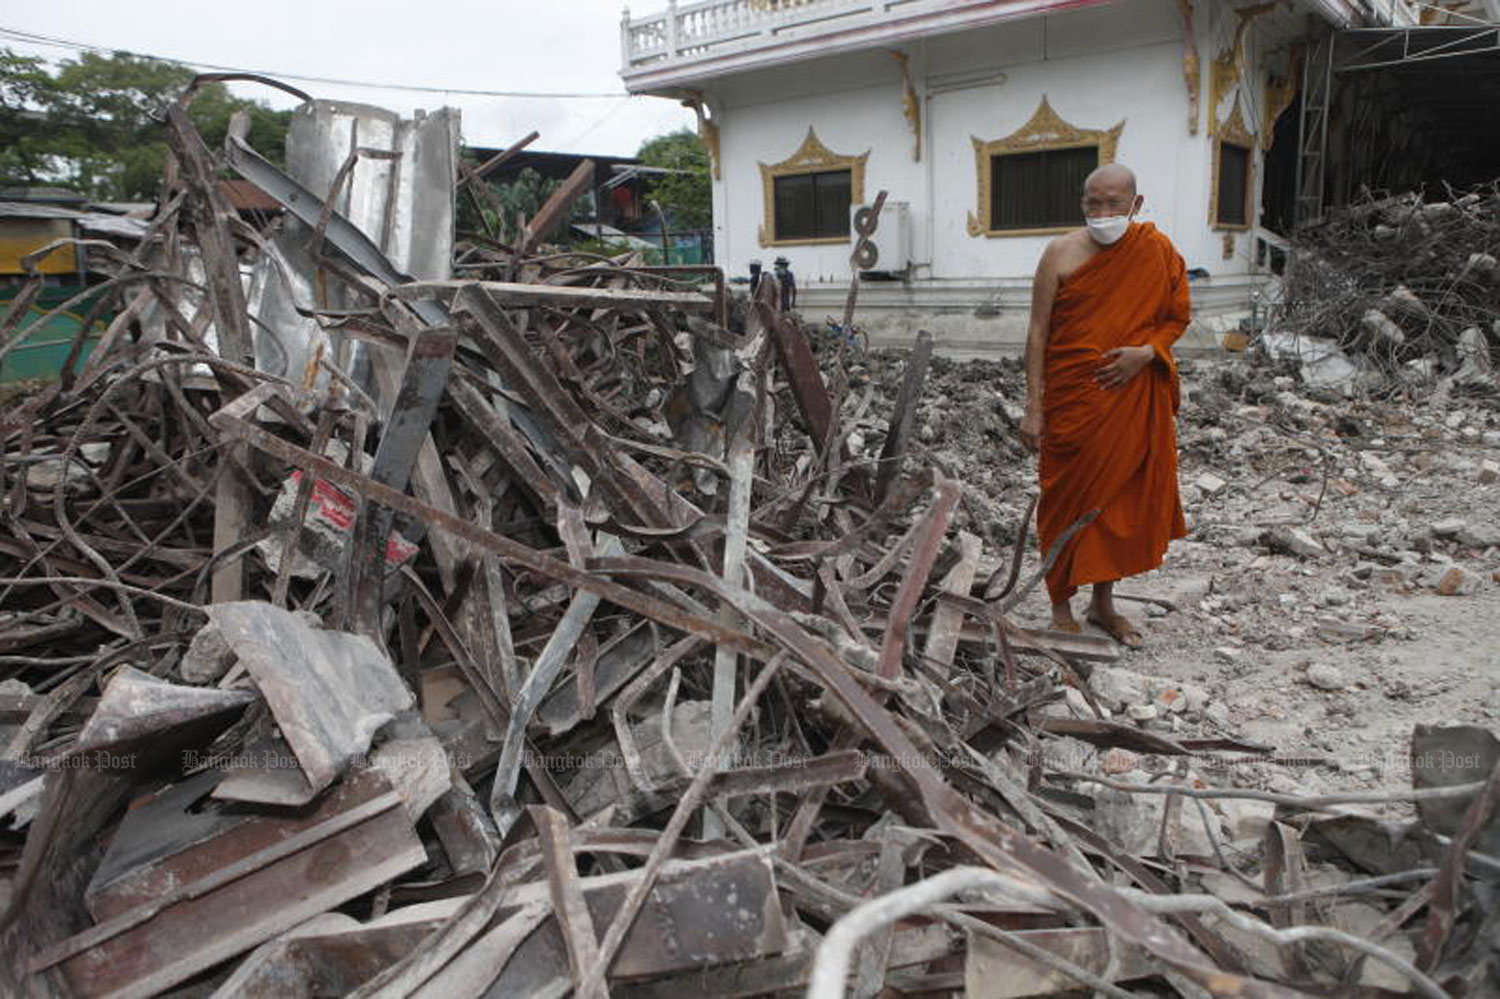 Phra Khru Patra Waranusit, assistant abbot of Wat Bang Nam Chon in Thon Buri district, Bangkok, inspects the temple's demolished crematorium on Friday. The 25-year-old crematorium developed cracks early this month, worn out by heavy use during the Covid-19 epidemic. (Photo: Nutthawat Wicheanbut)